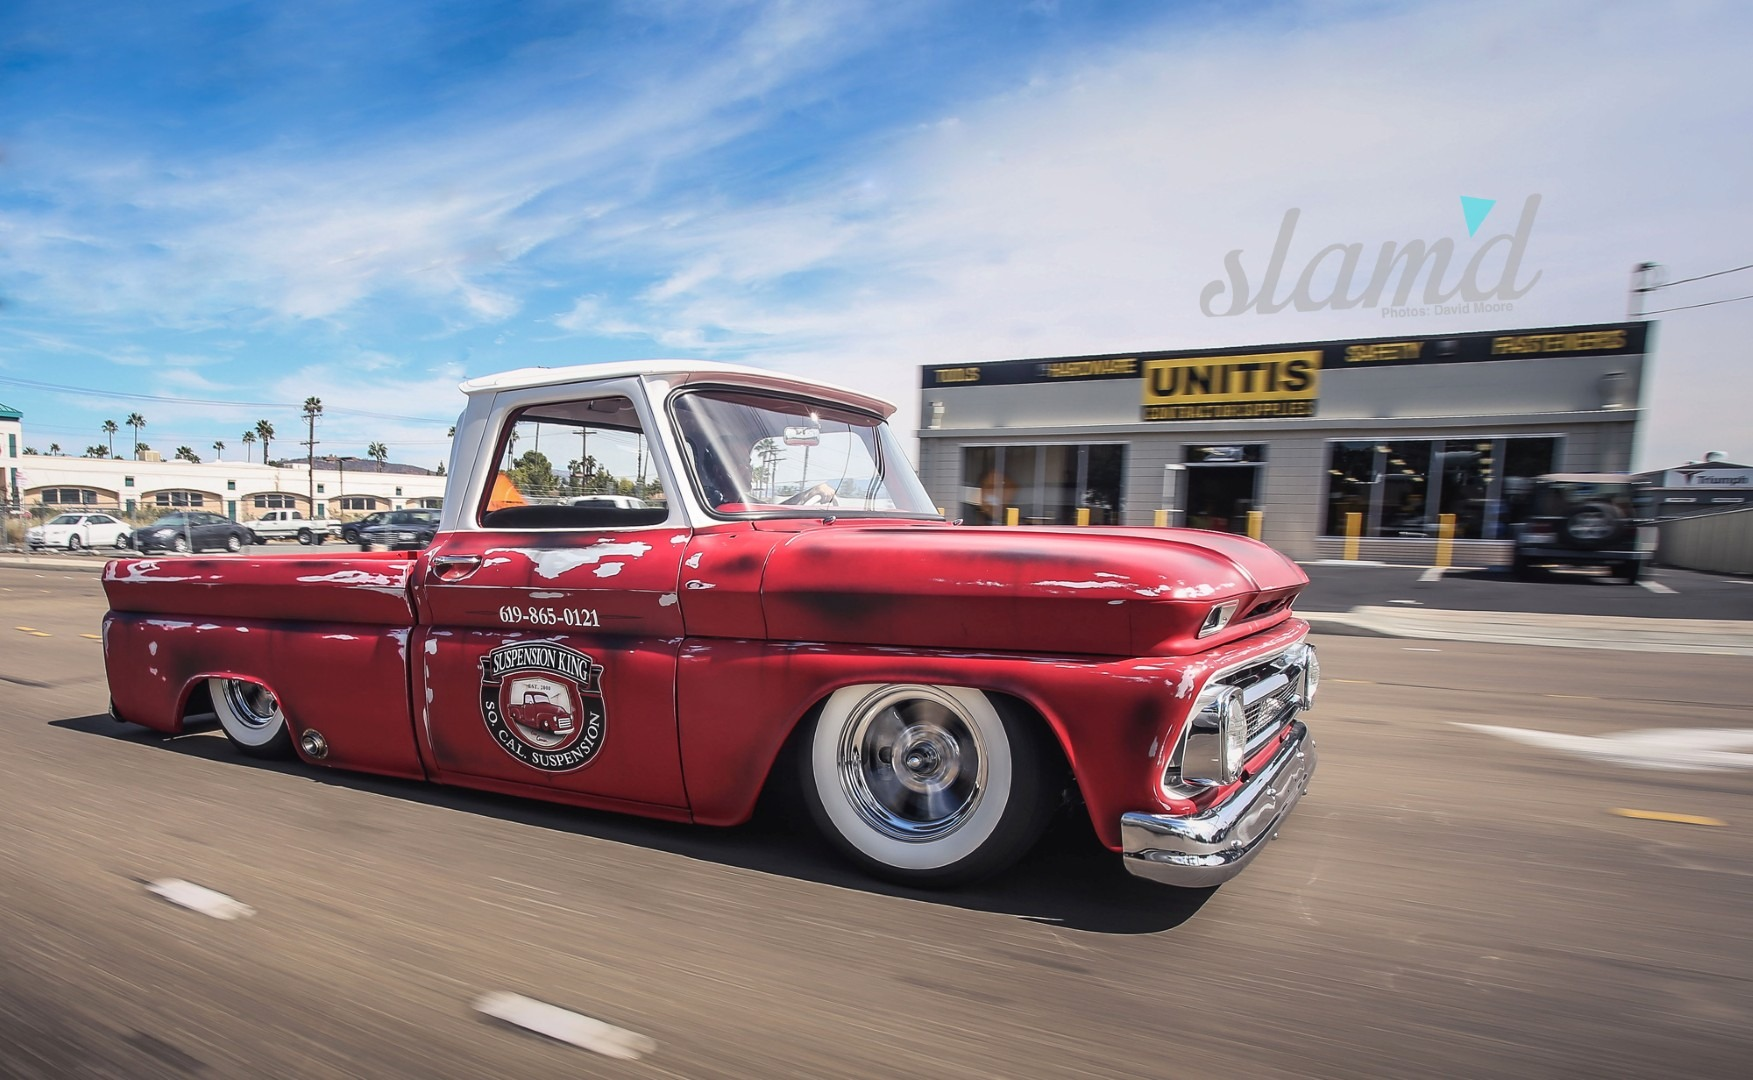 Cool Cars As Wallpaper 1966 Chevy C10 Custom Loose Cannon Customs